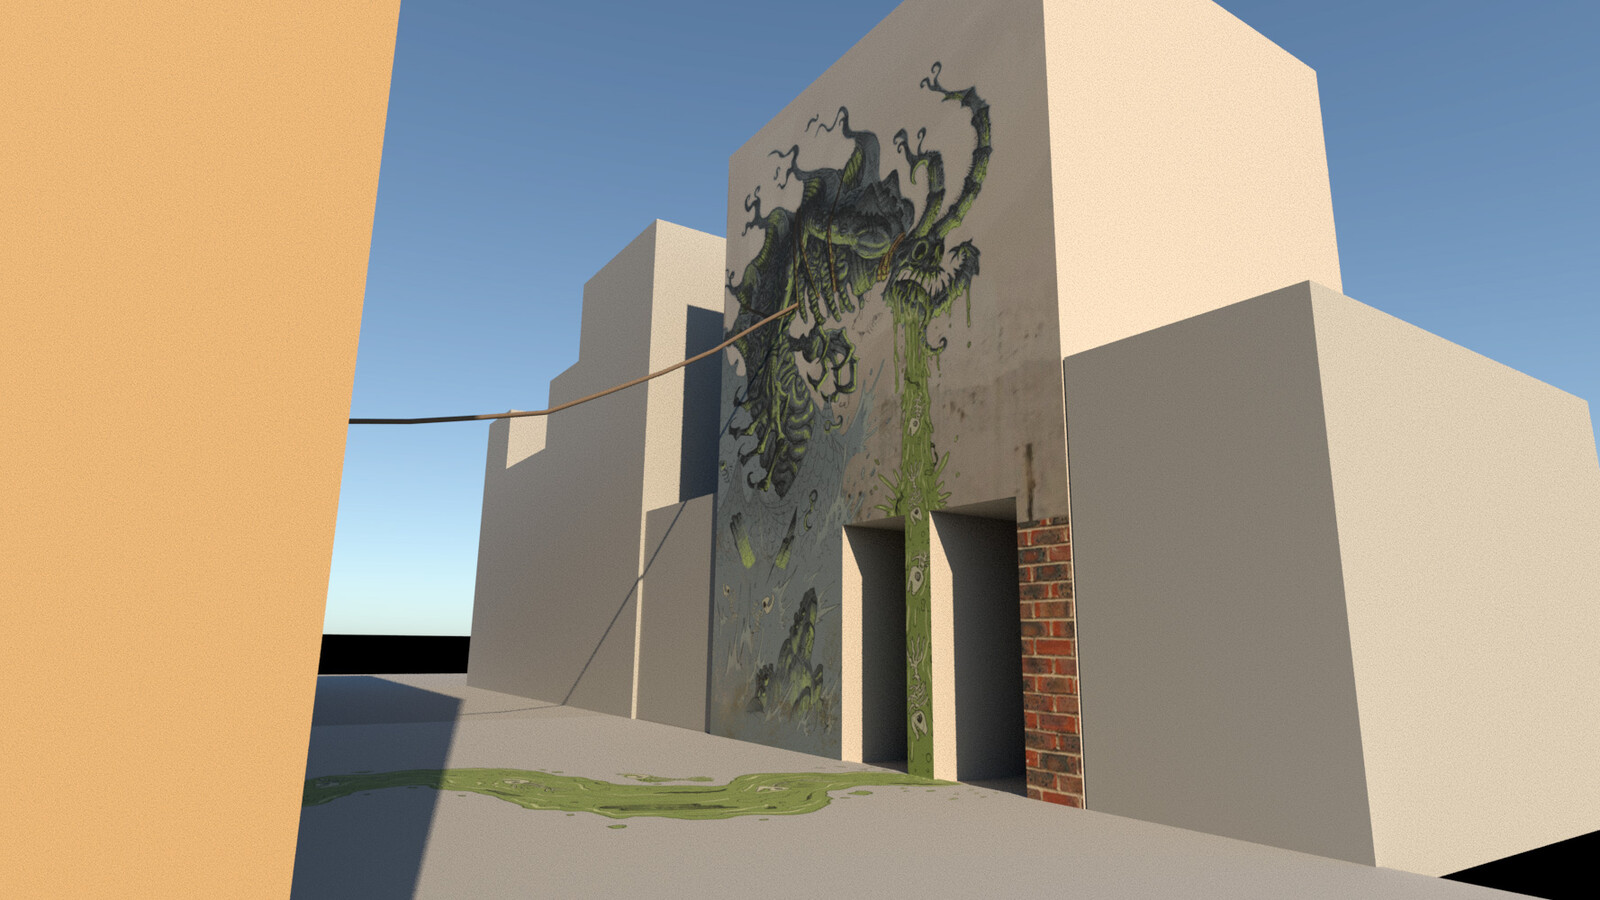 Some renders to showcase the mural from multiple angles.